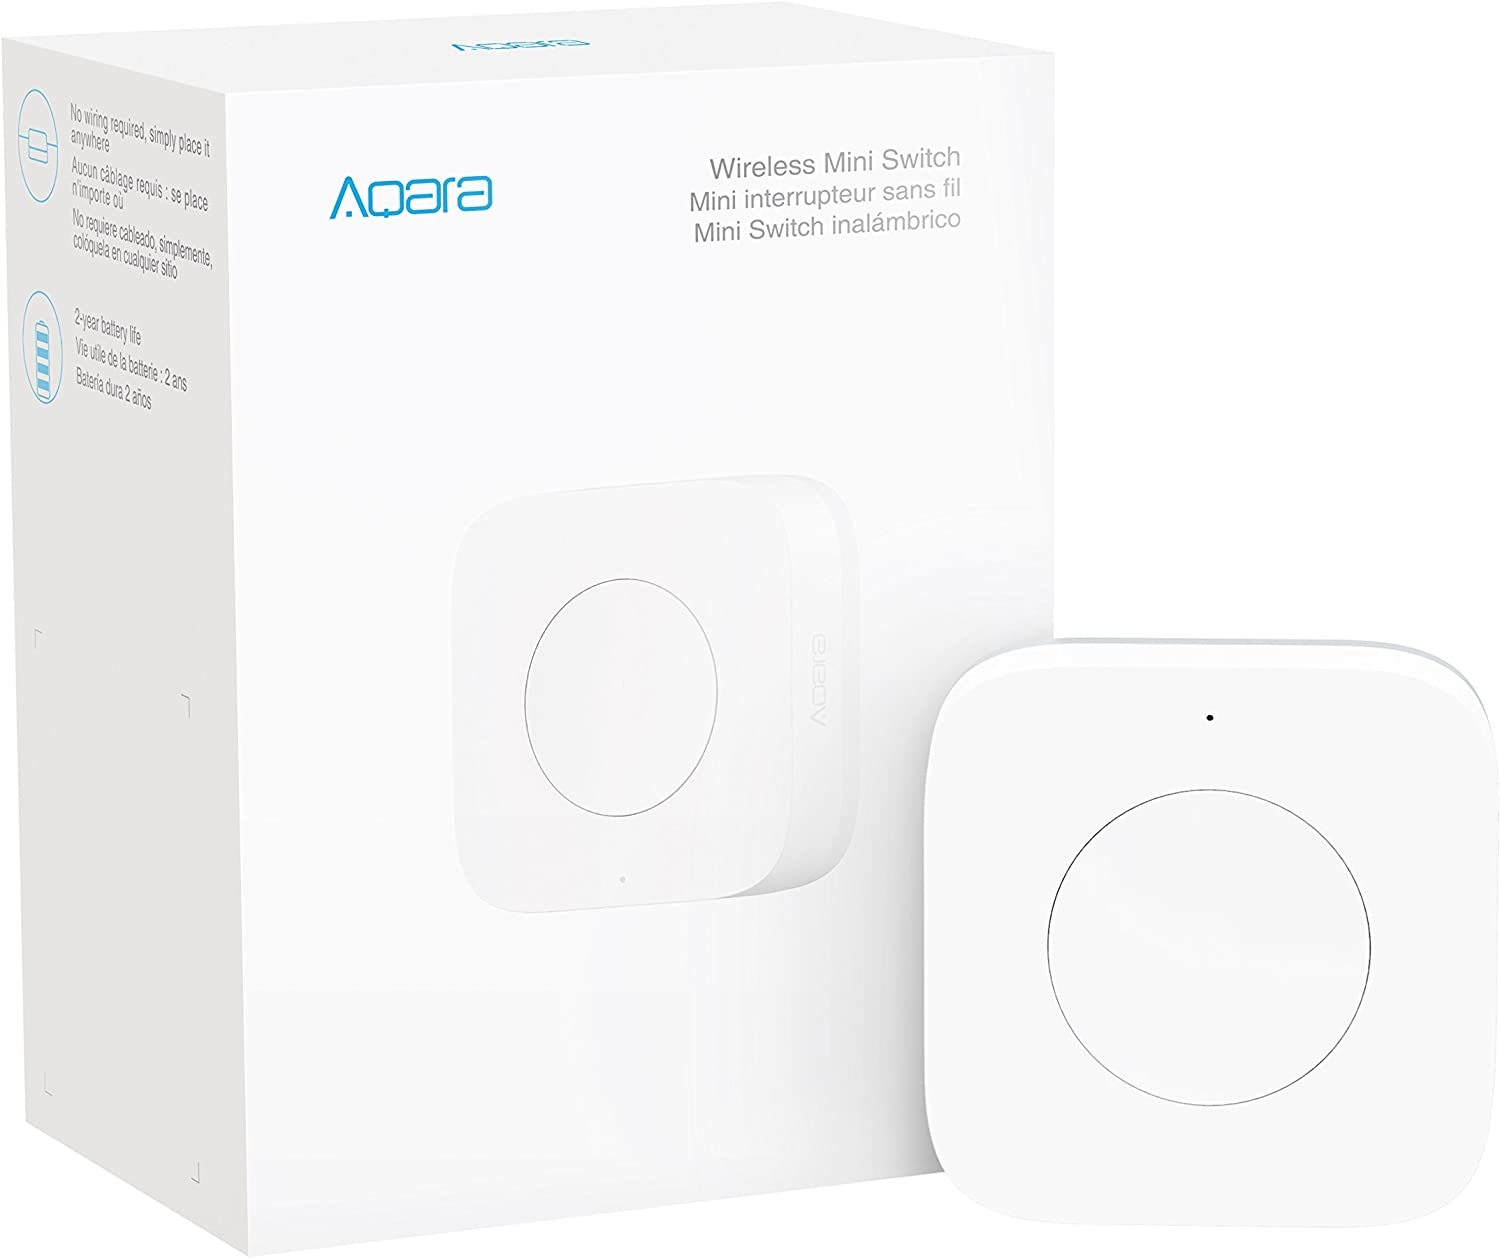 Aqara Wireless Mini Switch, Requires AQARA HUB, Zigbee Connection, Versatile 3-Way Control Button for Smart Home Devices, Compatible with Apple HomeKit